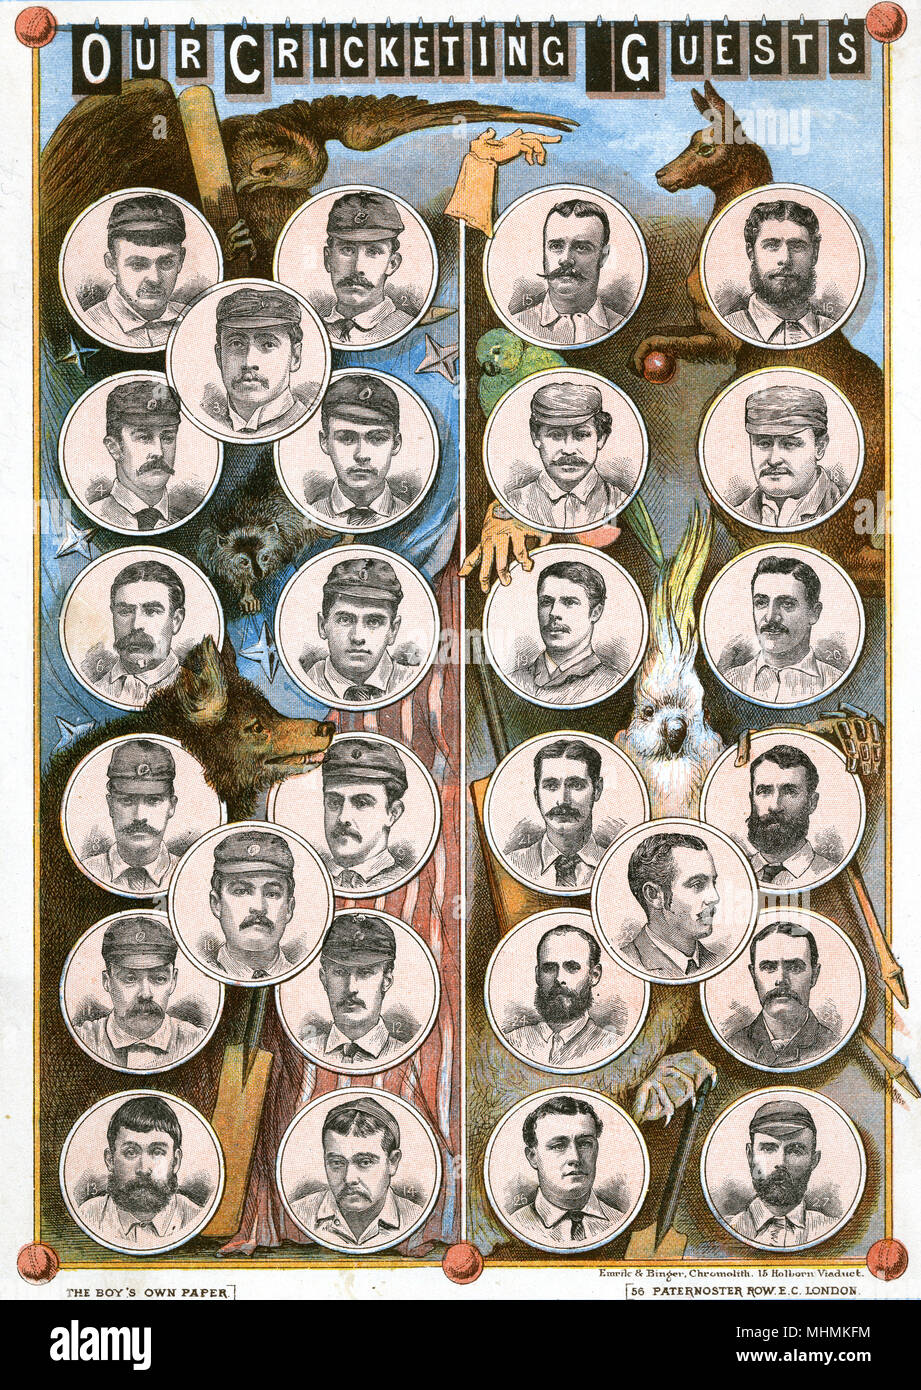 'Our Cricketing Guests' The Philadelphia and Australian touring teams.      Date: 1884 - Stock Image